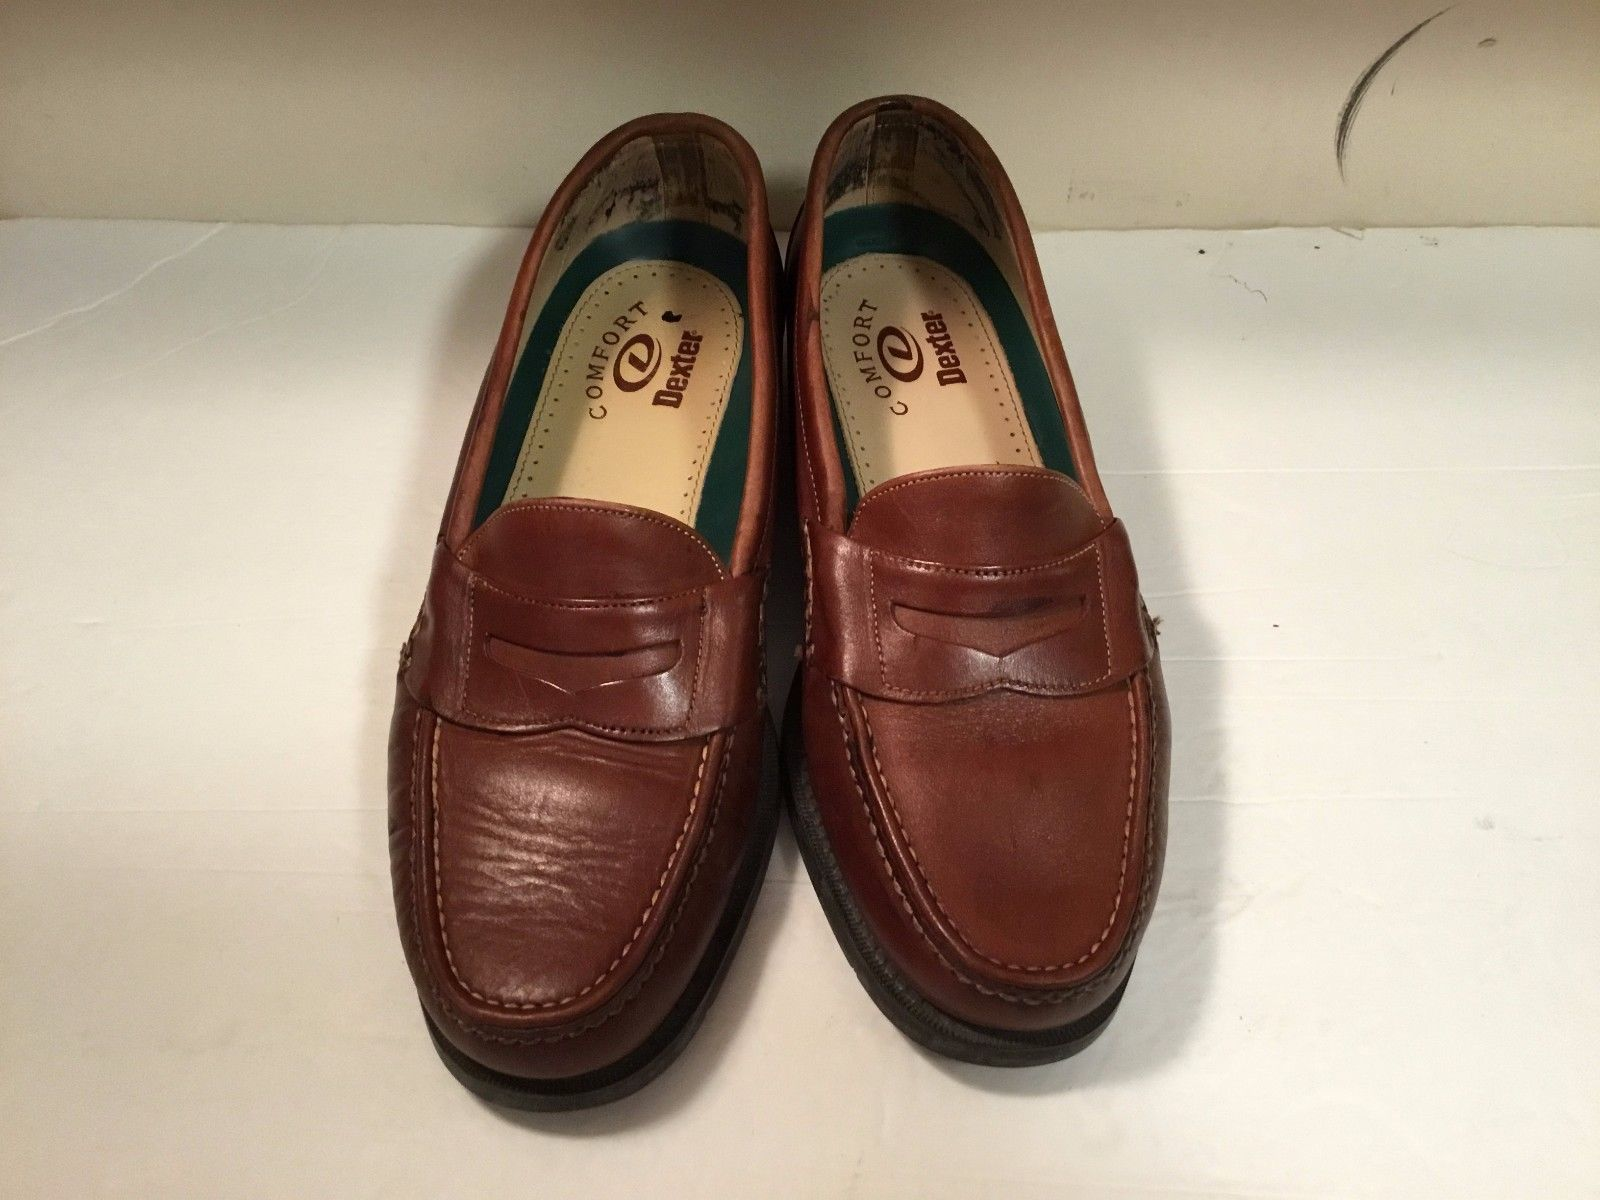 Dexter 10.5 M Mens Penny Loafer Shoes Comfort 347100 N515-5